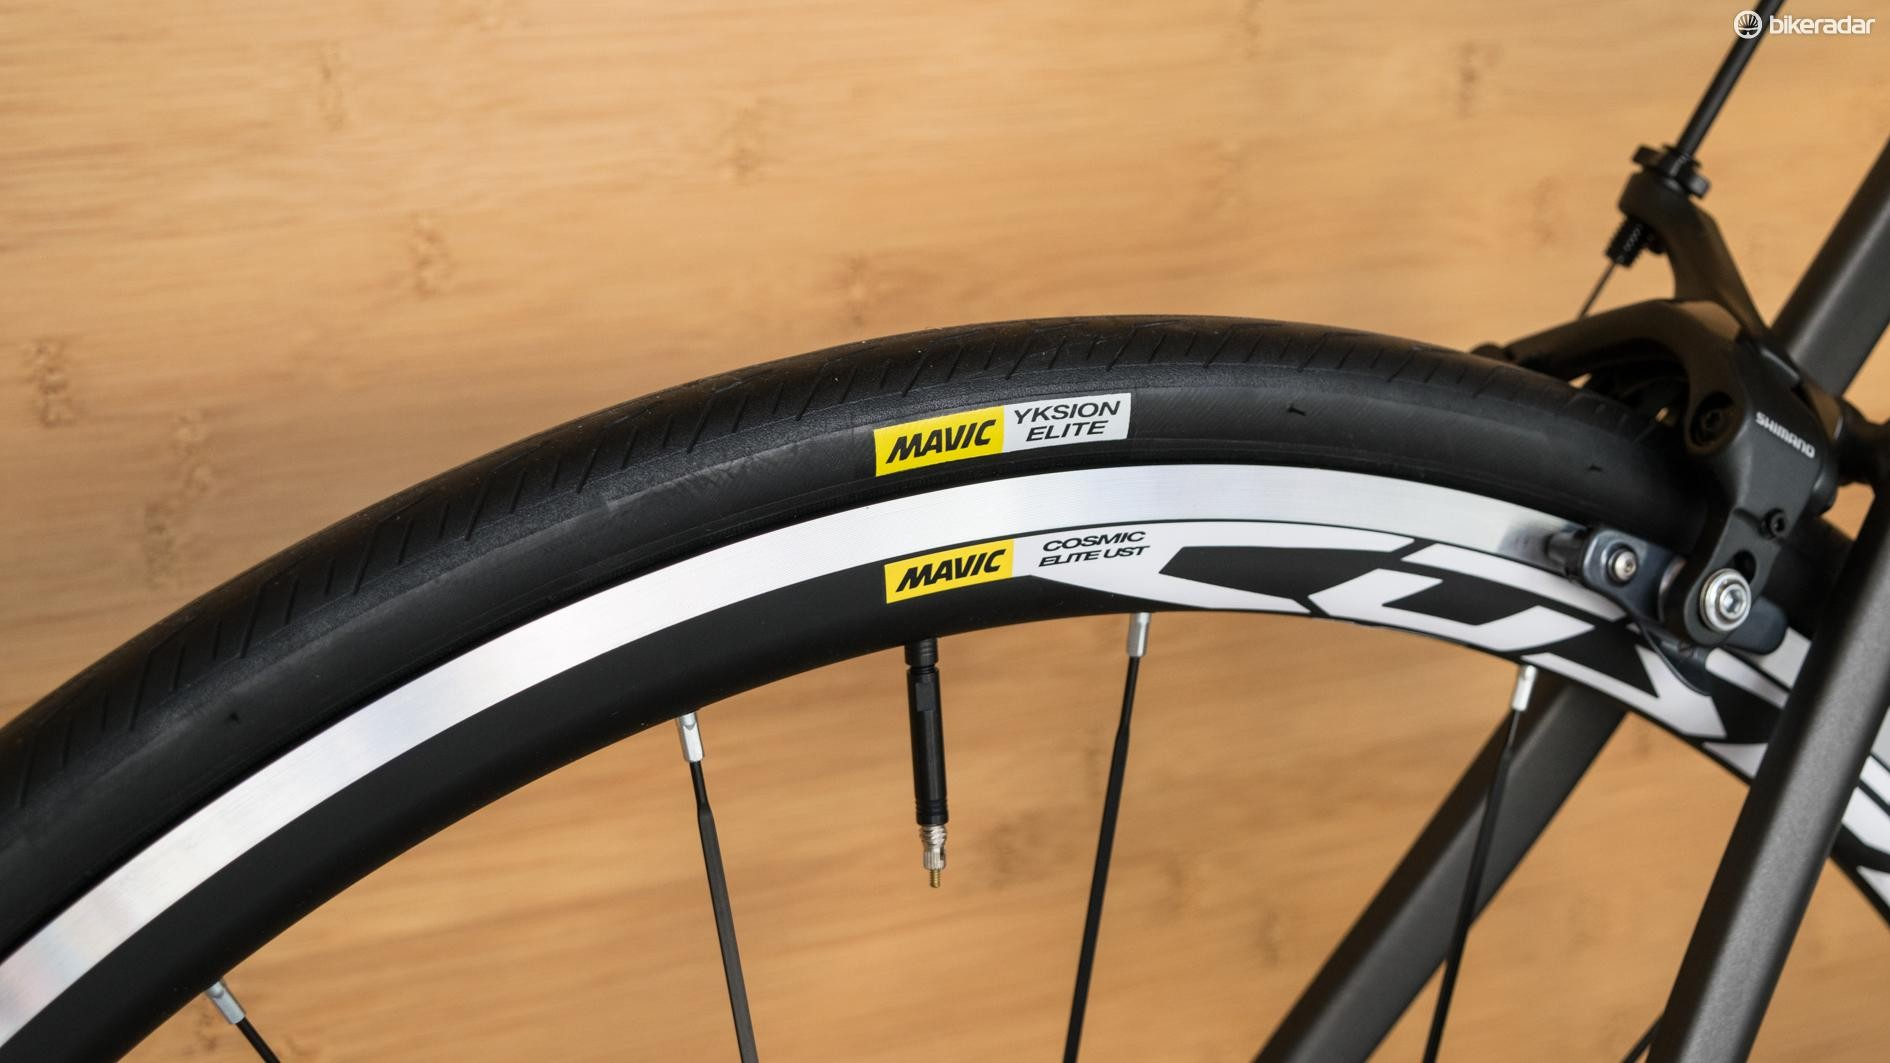 Mavic's Cosmic Elites aren't super-light but they're a welcome sight on such an affordable bike